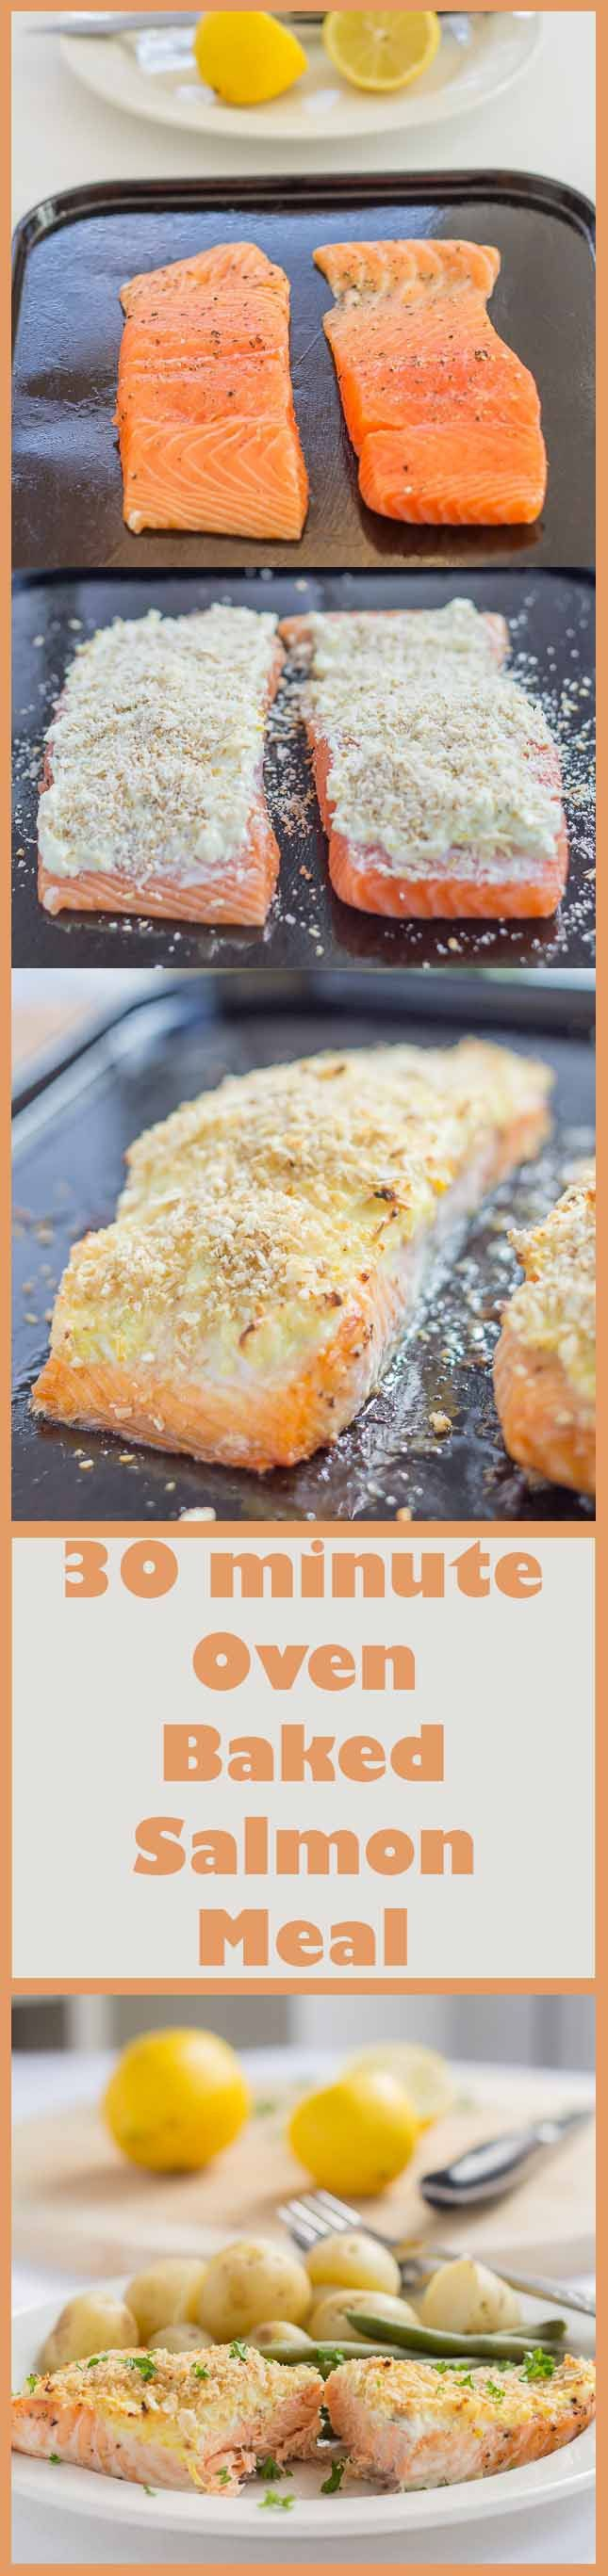 This oven baked salmon with cream cheese and oat bran crust recipe makes a super simple, delicious and protein packed meal you're just going to love. And all it takes is just 30 minutes!